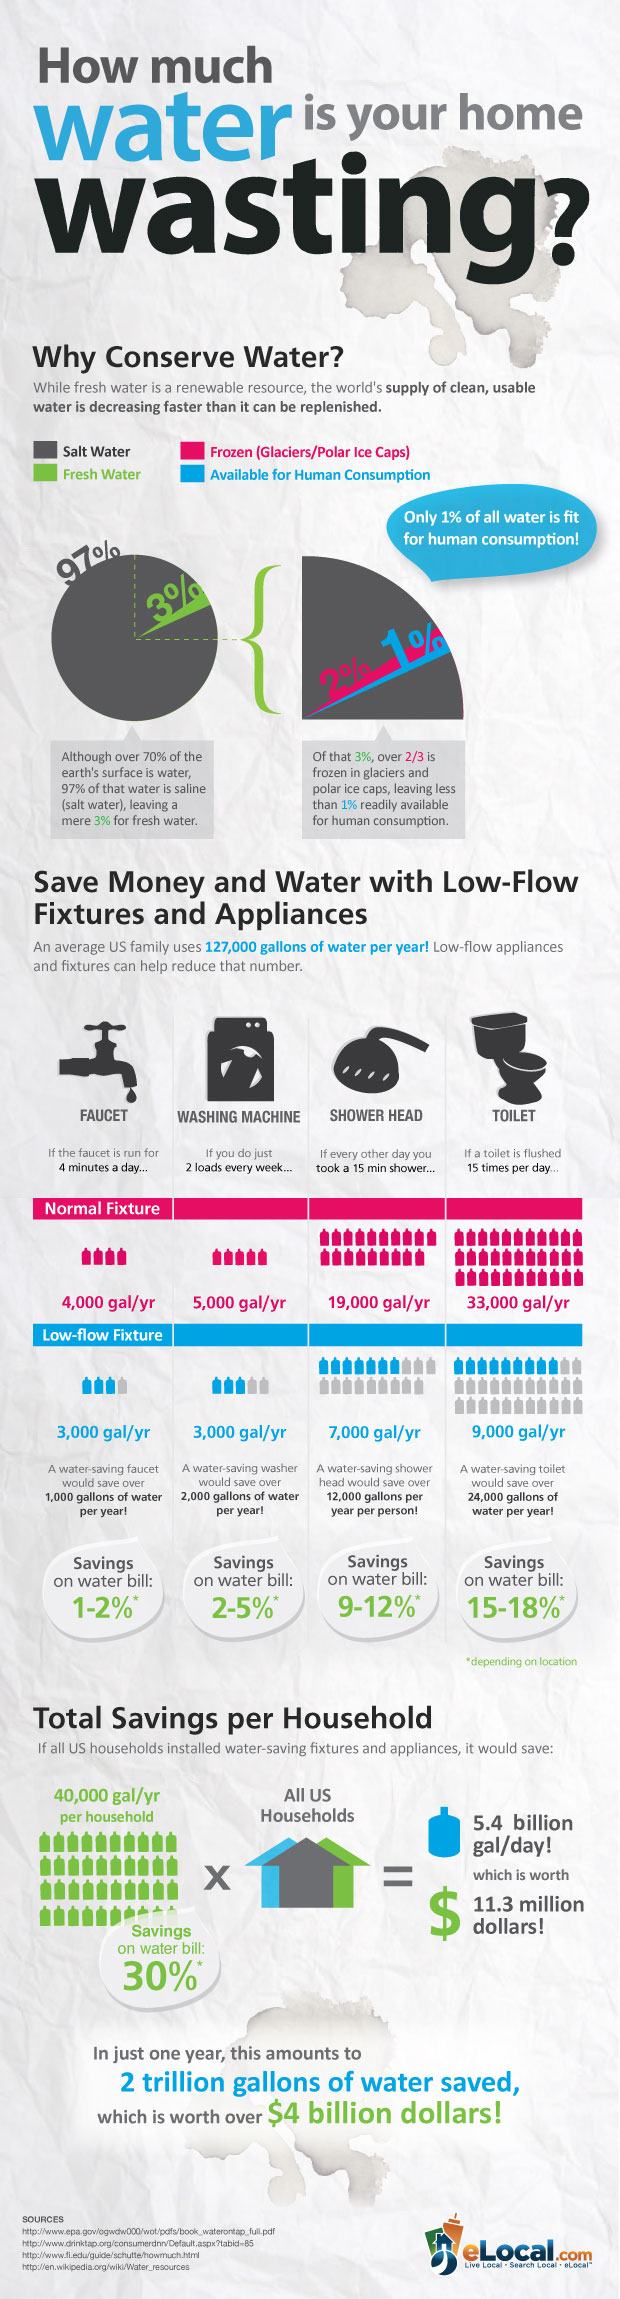 HomeWaterConservation